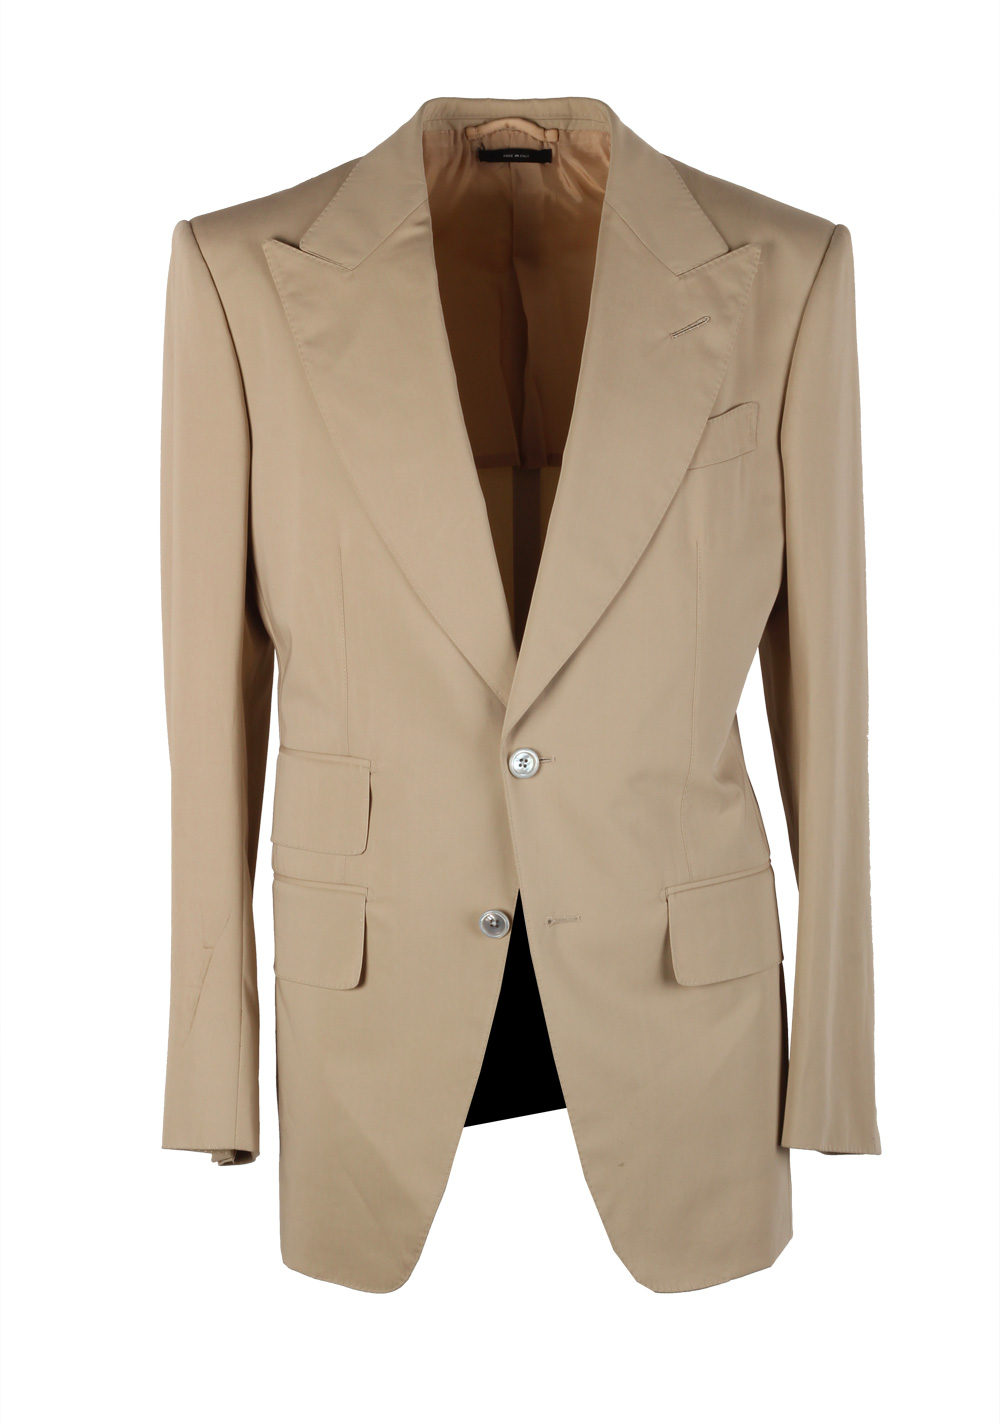 TOM FORD Atticus Sand Suit Size 46 / 36R U.S. In Cotton | Costume Limité